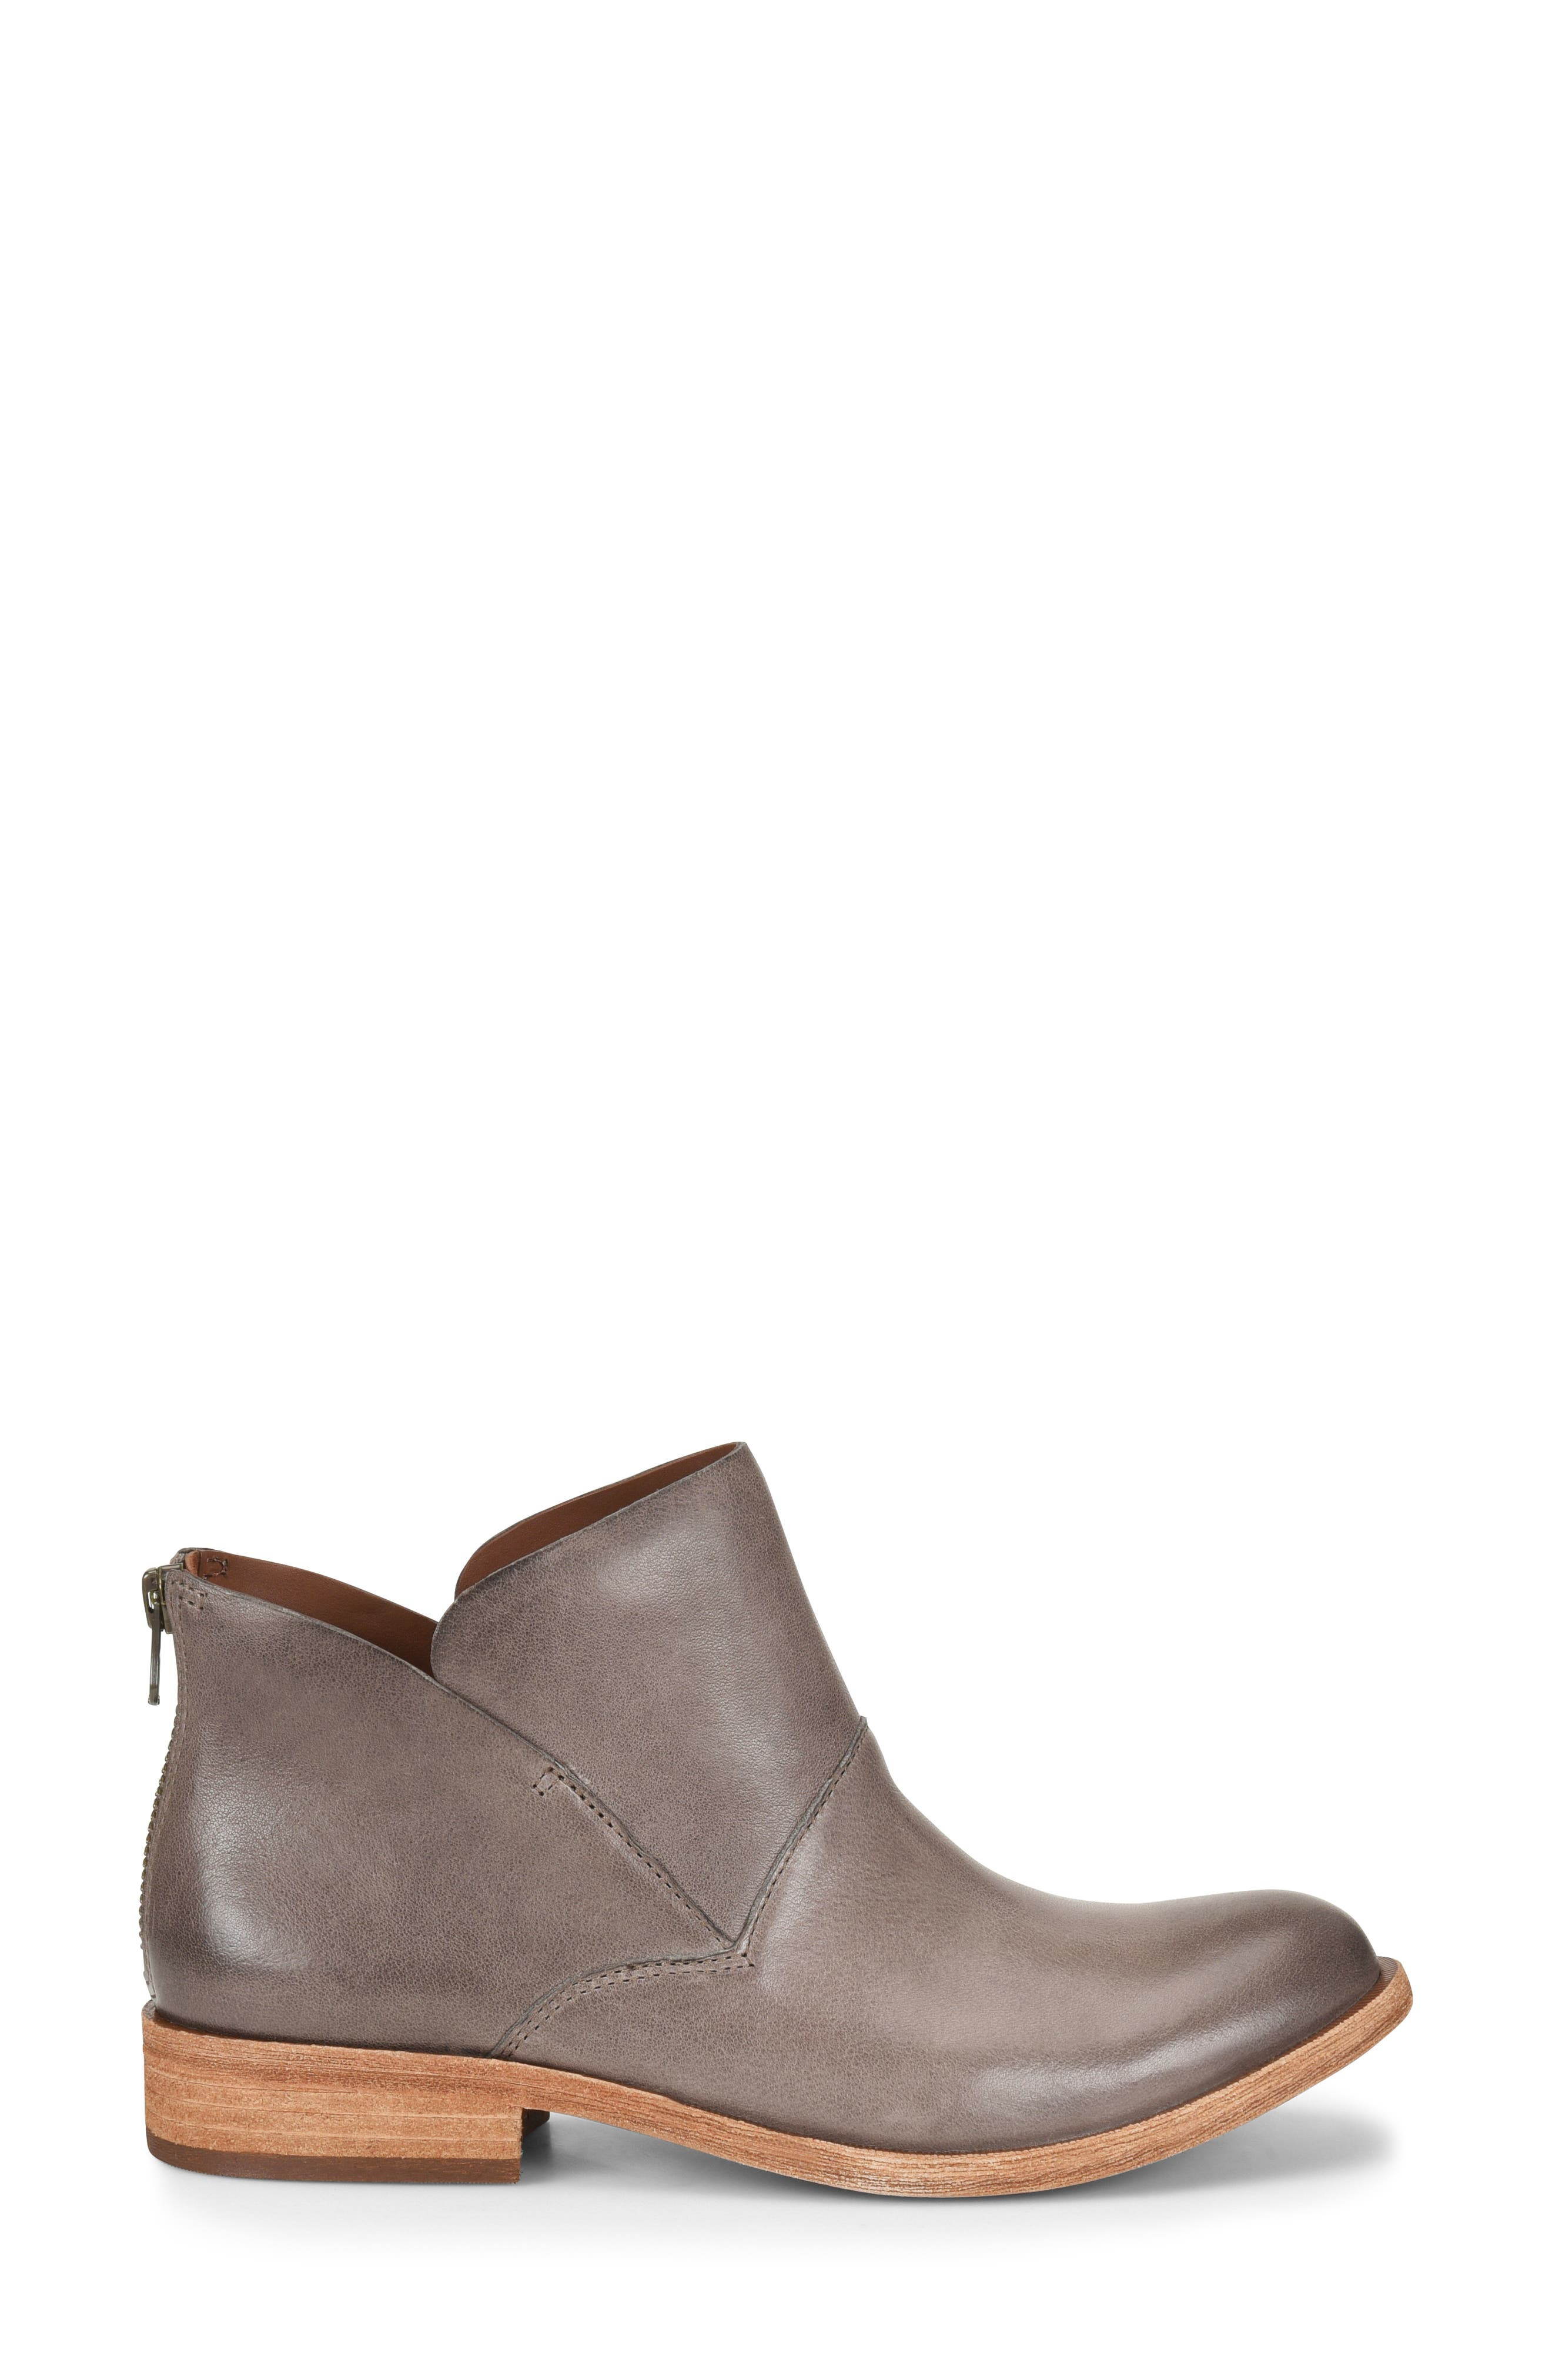 Ryder Ankle Boot,                             Alternate thumbnail 3, color,                             GREY LEATHER